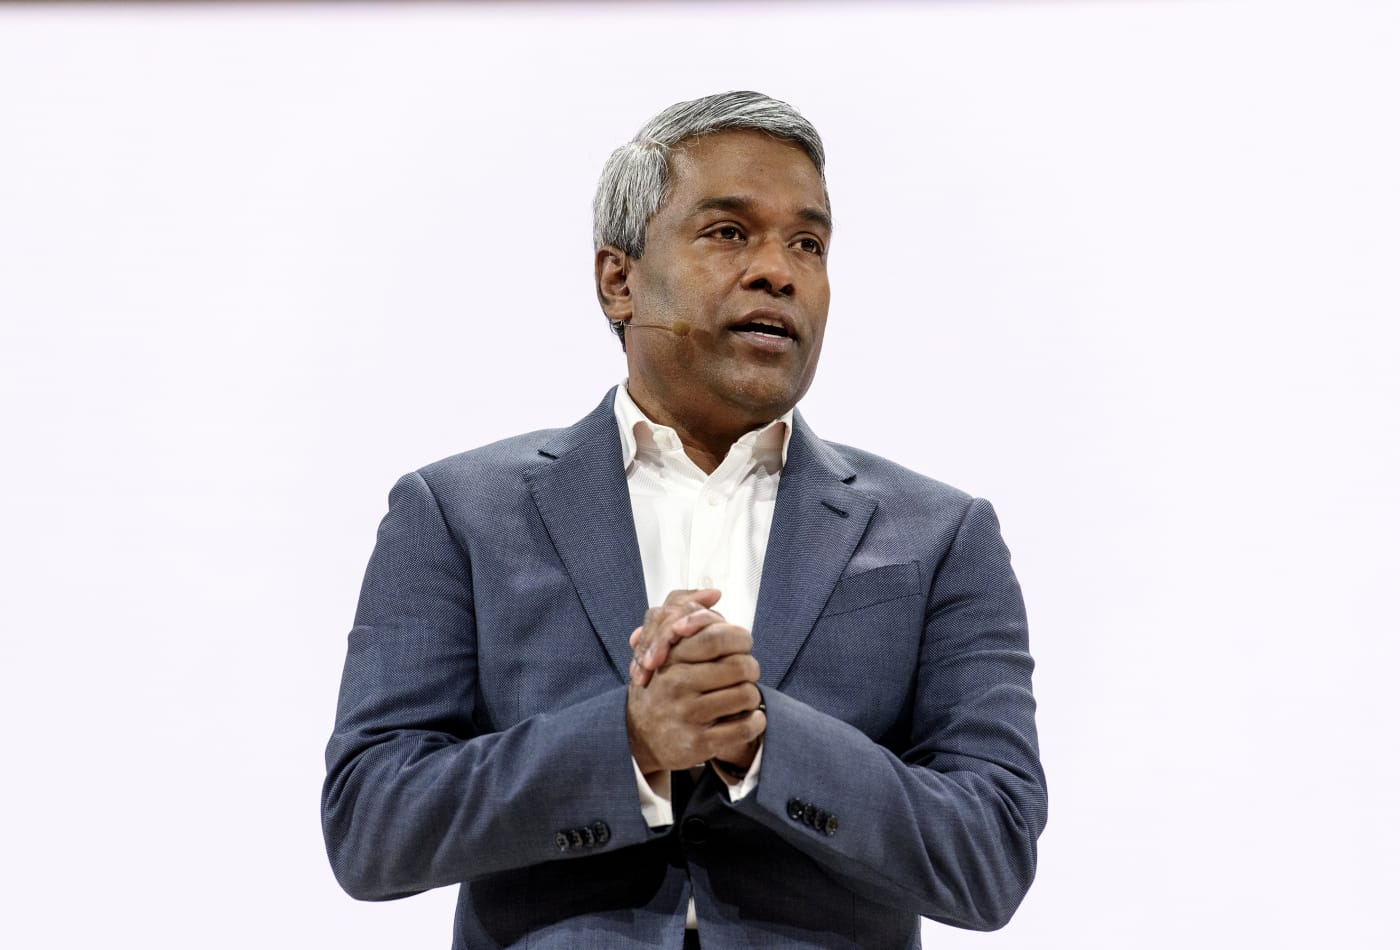 Google Cloud CEO Thomas Kurian is taking a page from the enterprise sales handbook against Amazon and Microsoft